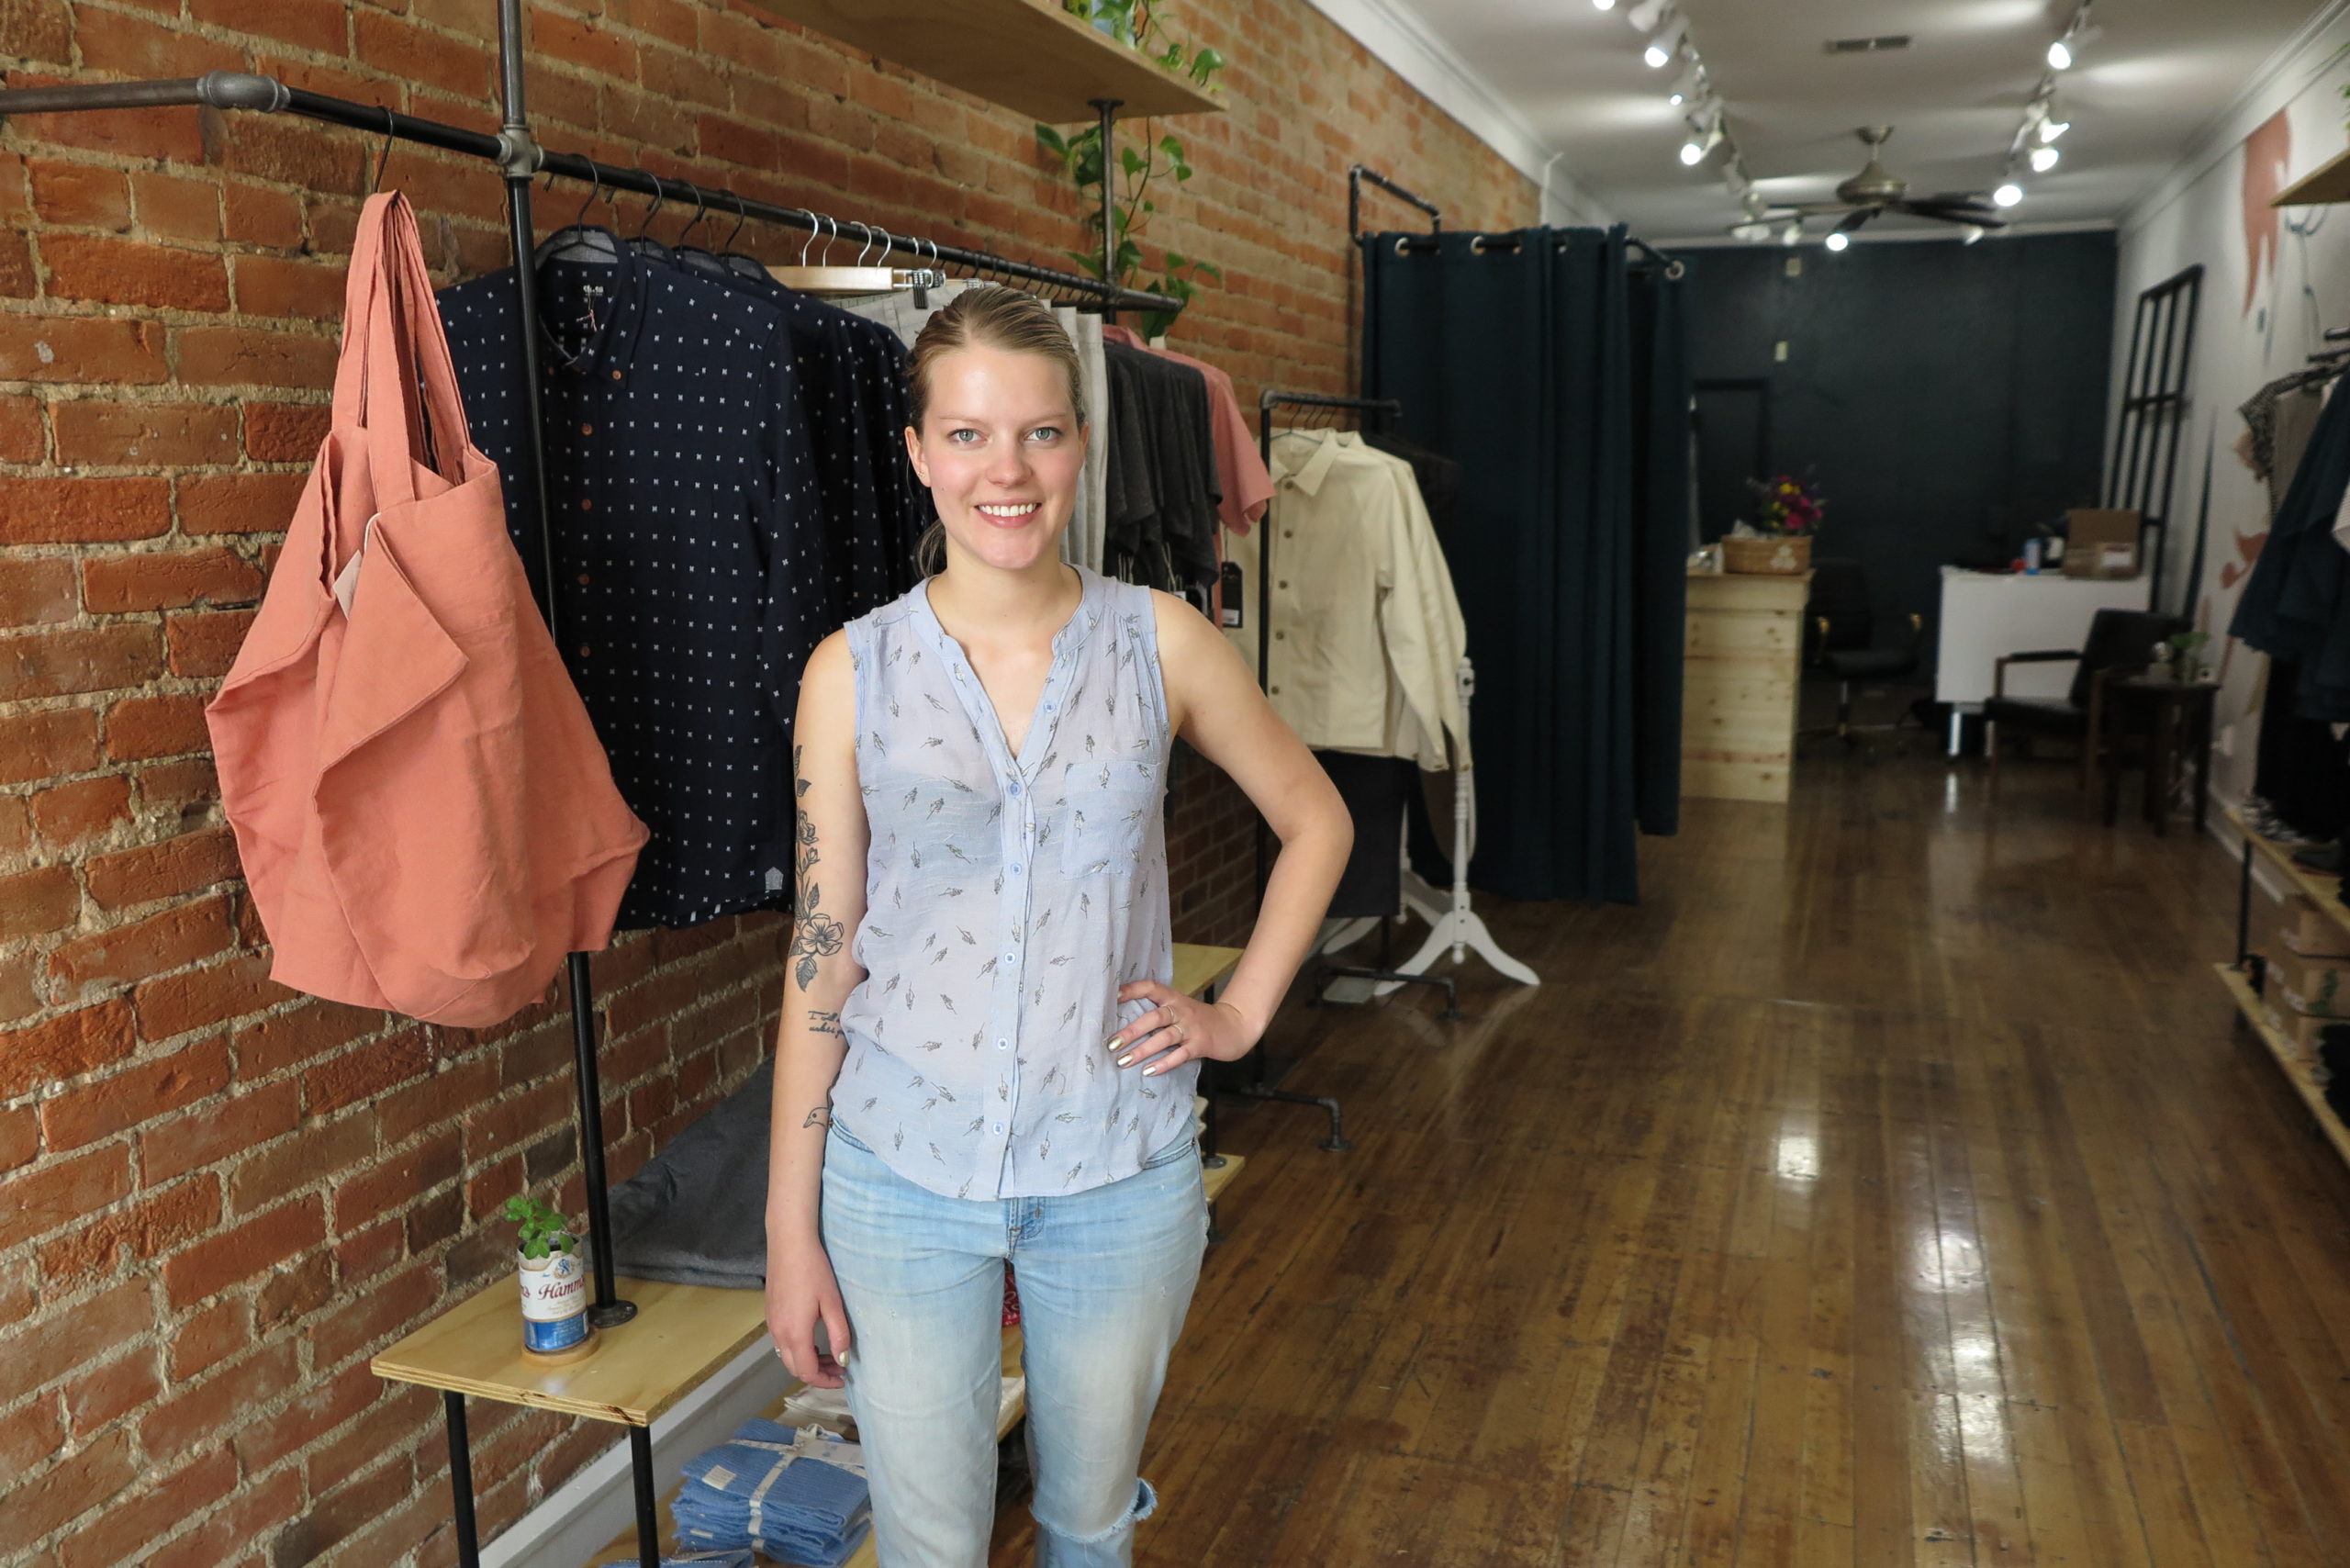 Colorado Springs native Rebecca Moon originally planned to open her downtown boutique, Moonbeam Clothiers, on March 20th. The pandemic shutdown forced her to postpone until May 29th.